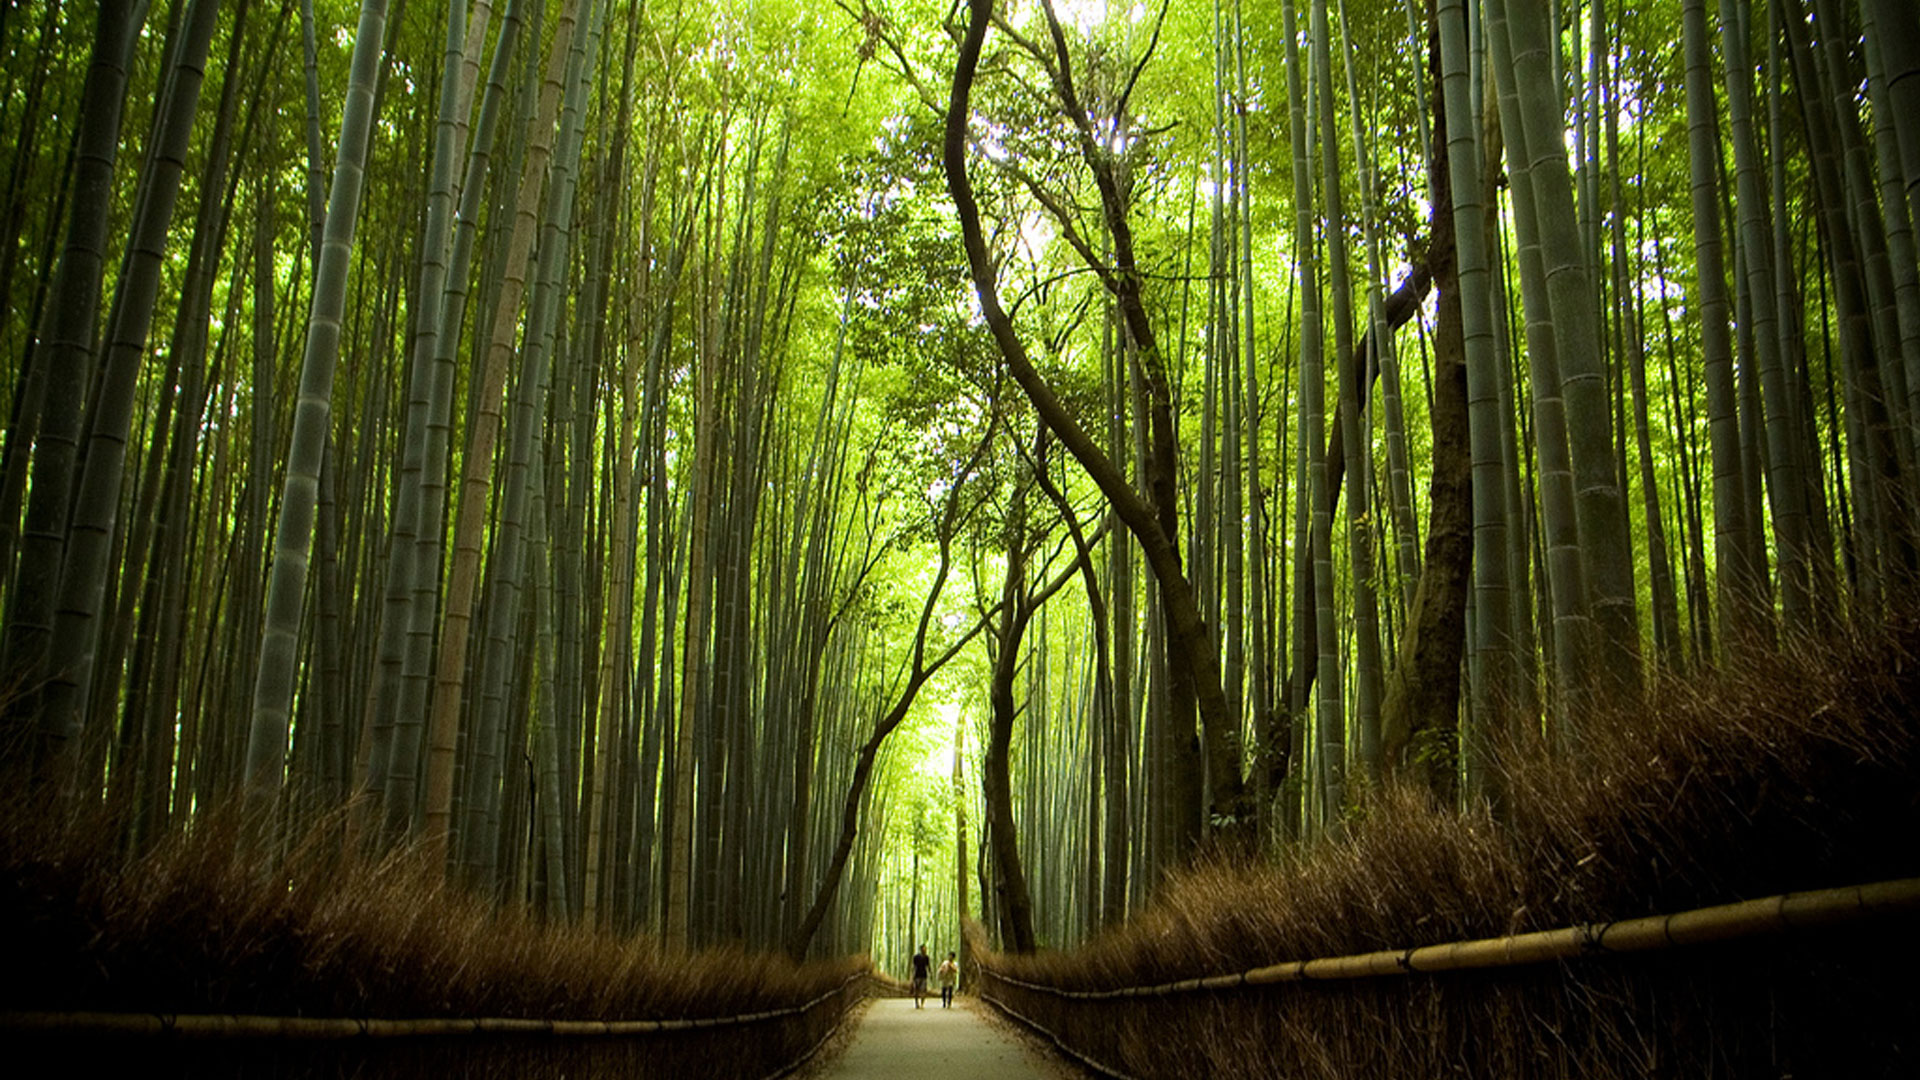 Bamboo Forest Near Kyoto Japan